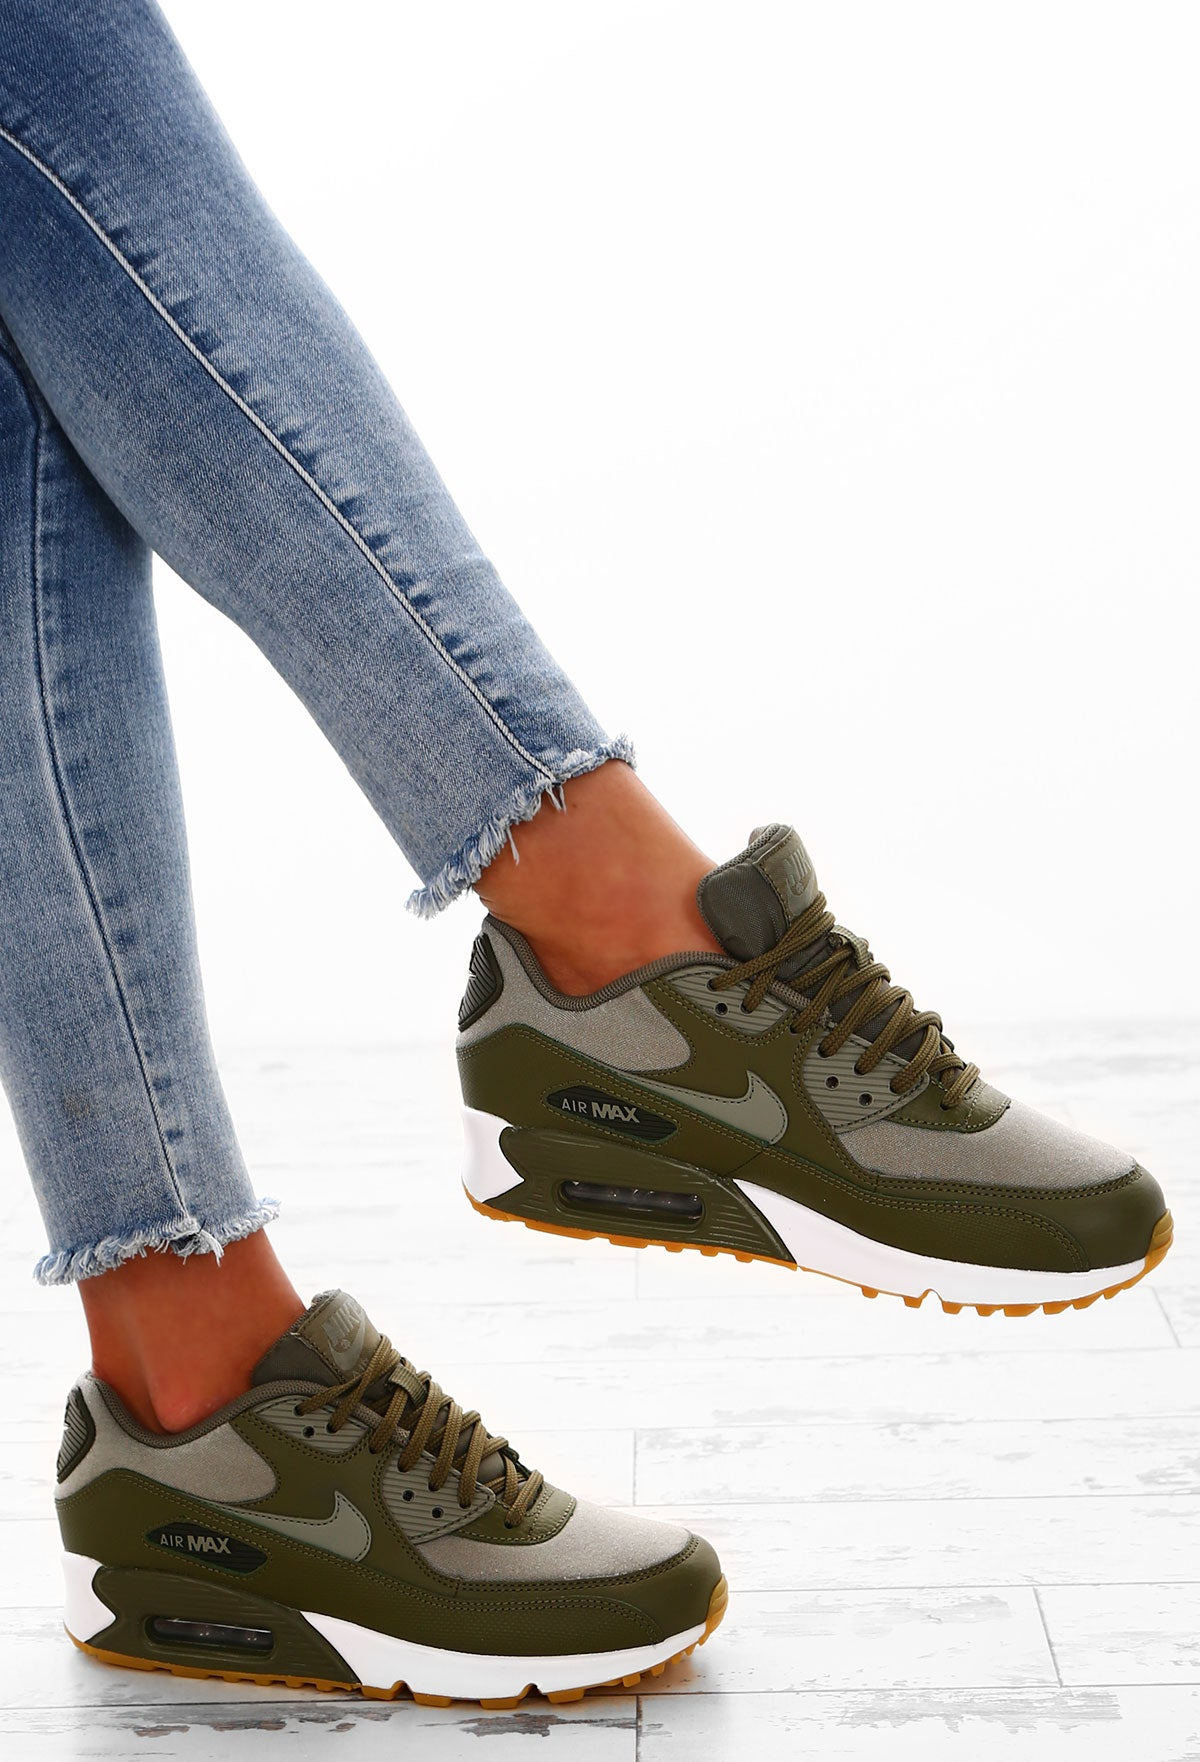 Nike Air Max 90 Khaki Trainers – Pink Boutique UK